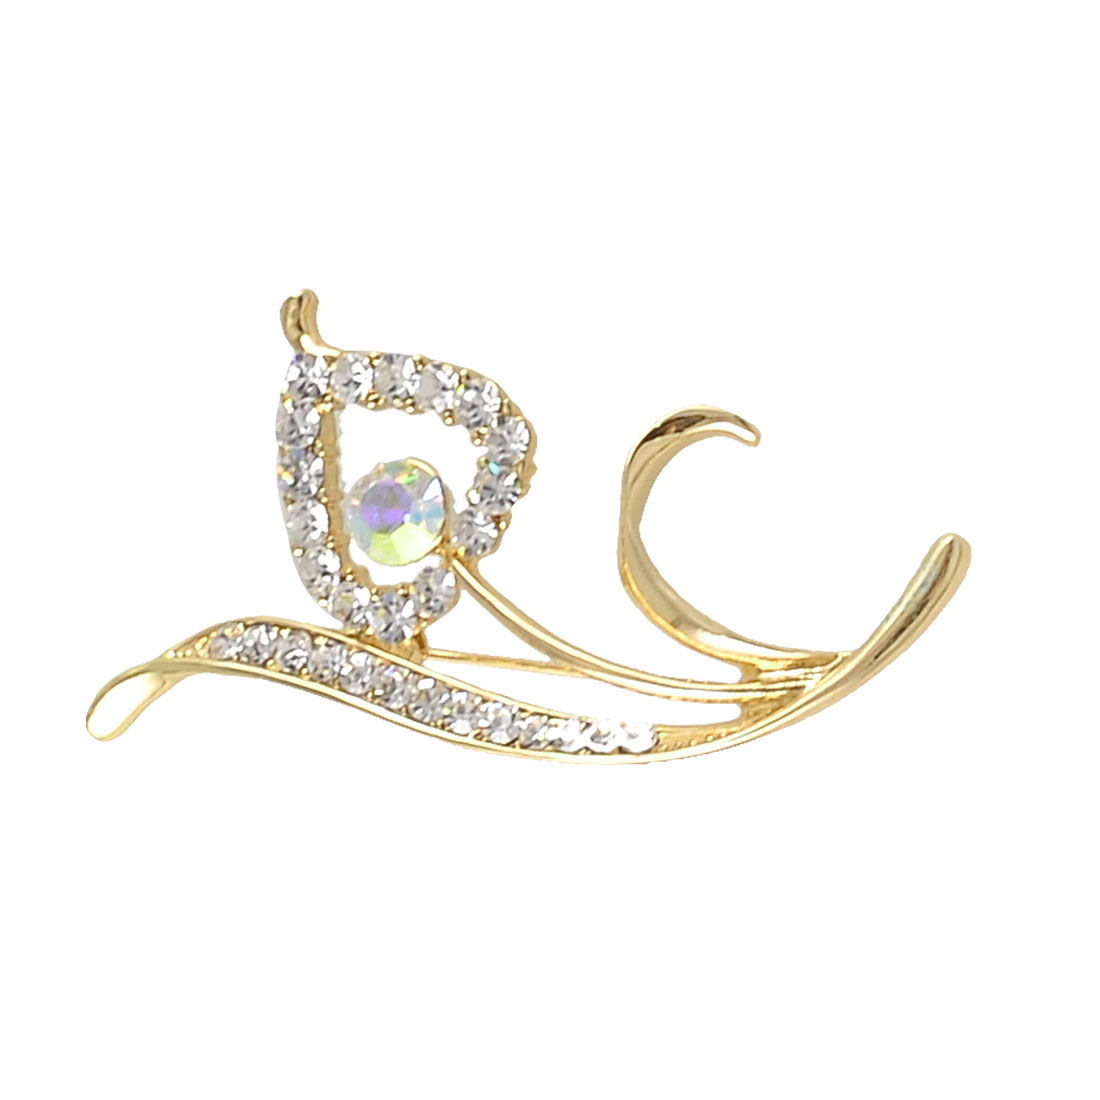 Women Parties Bling Crystals Leaves Design Breast Pin Brooch Gold Tone